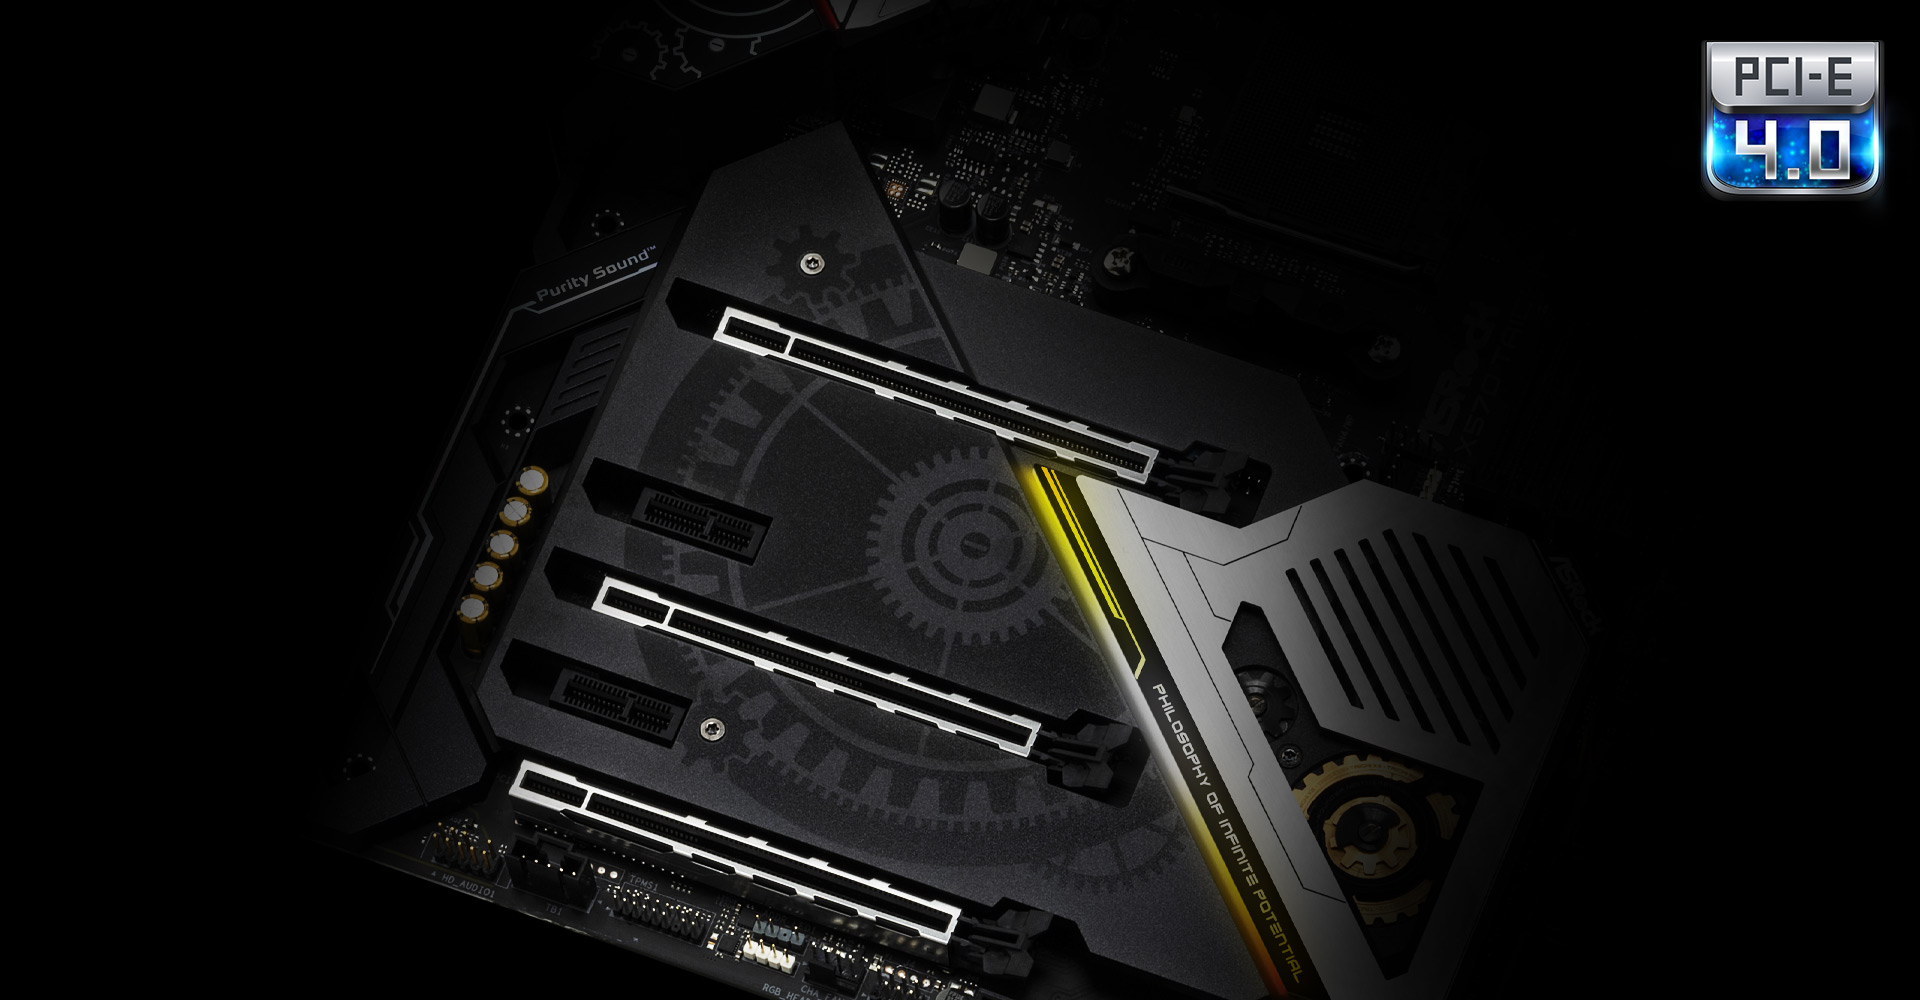 Closeup shots of the three steel slots on the ASRock X570 Taichi Motherboard